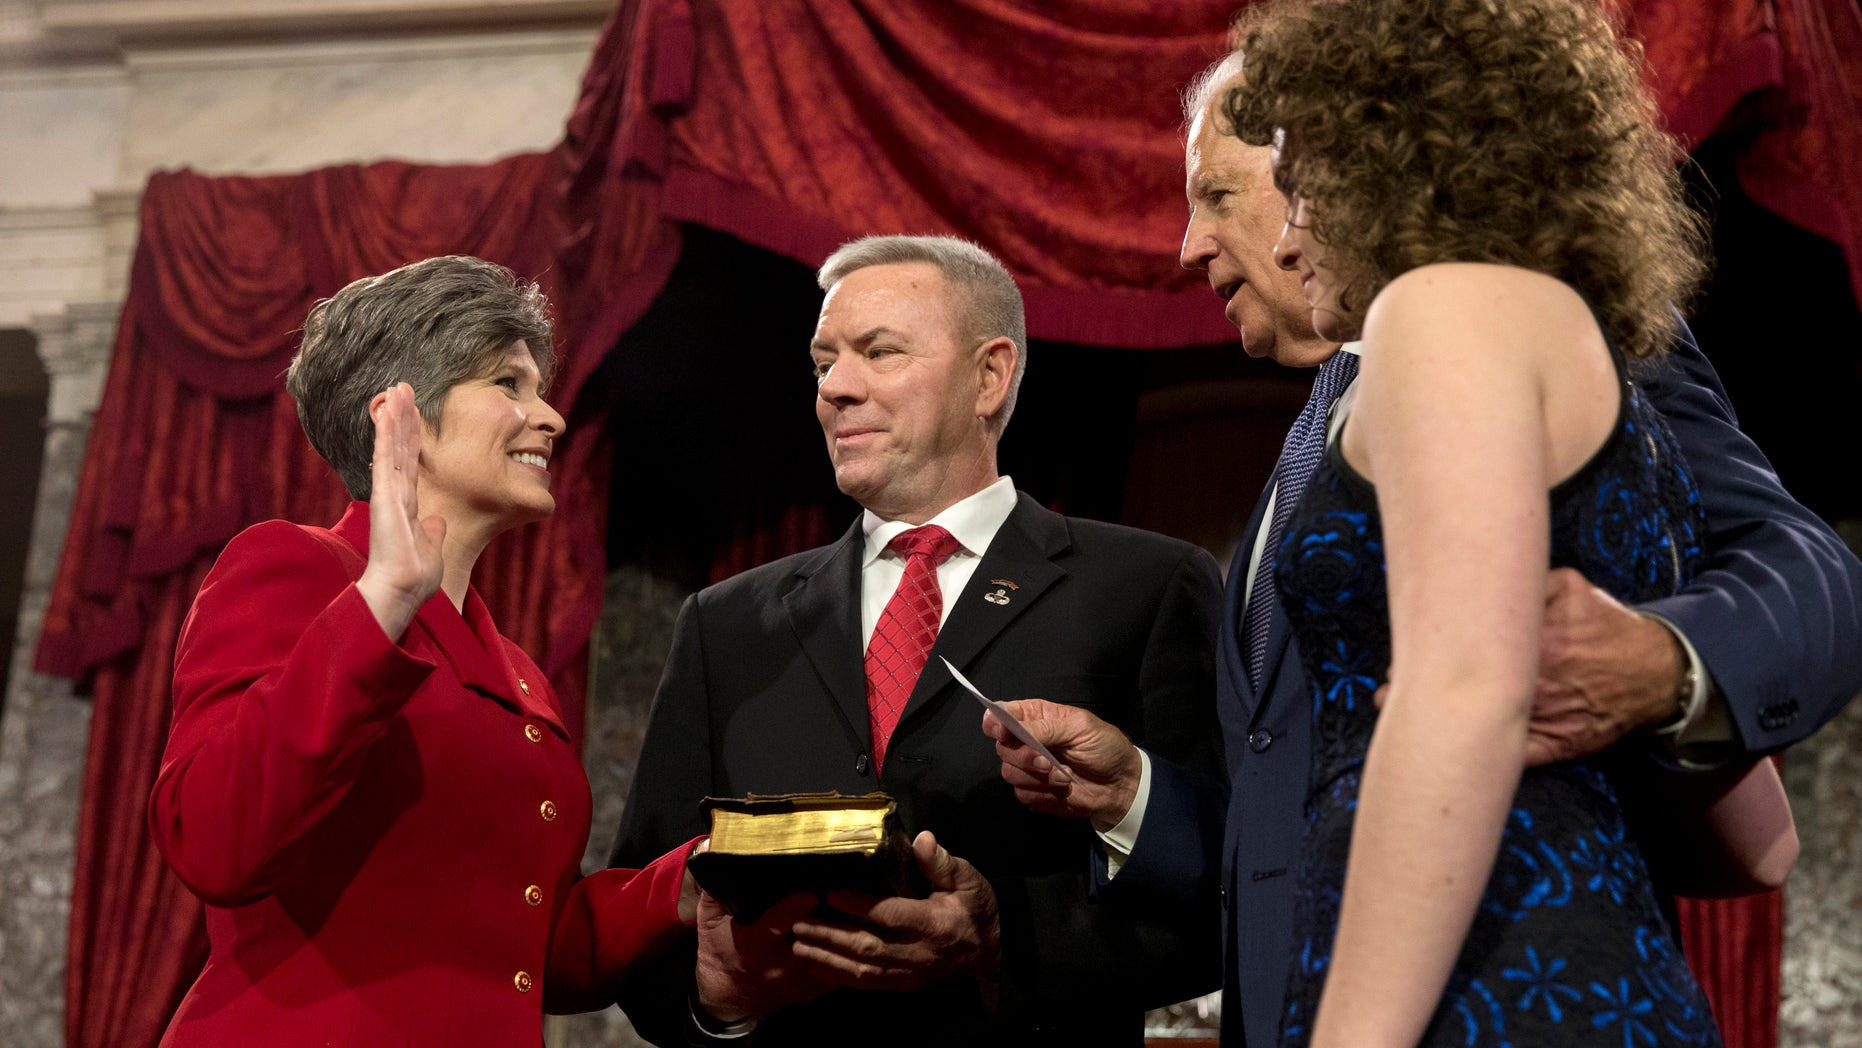 Sen. Joni Ernst, R-Iowa, says she turned down the chance to pursue running as President Trump's vice president in 2016 because of her husband, Gail Ernst. The two have finally settled their previously contentious divorce. (AP Photo/Jacquelyn Martin, File)